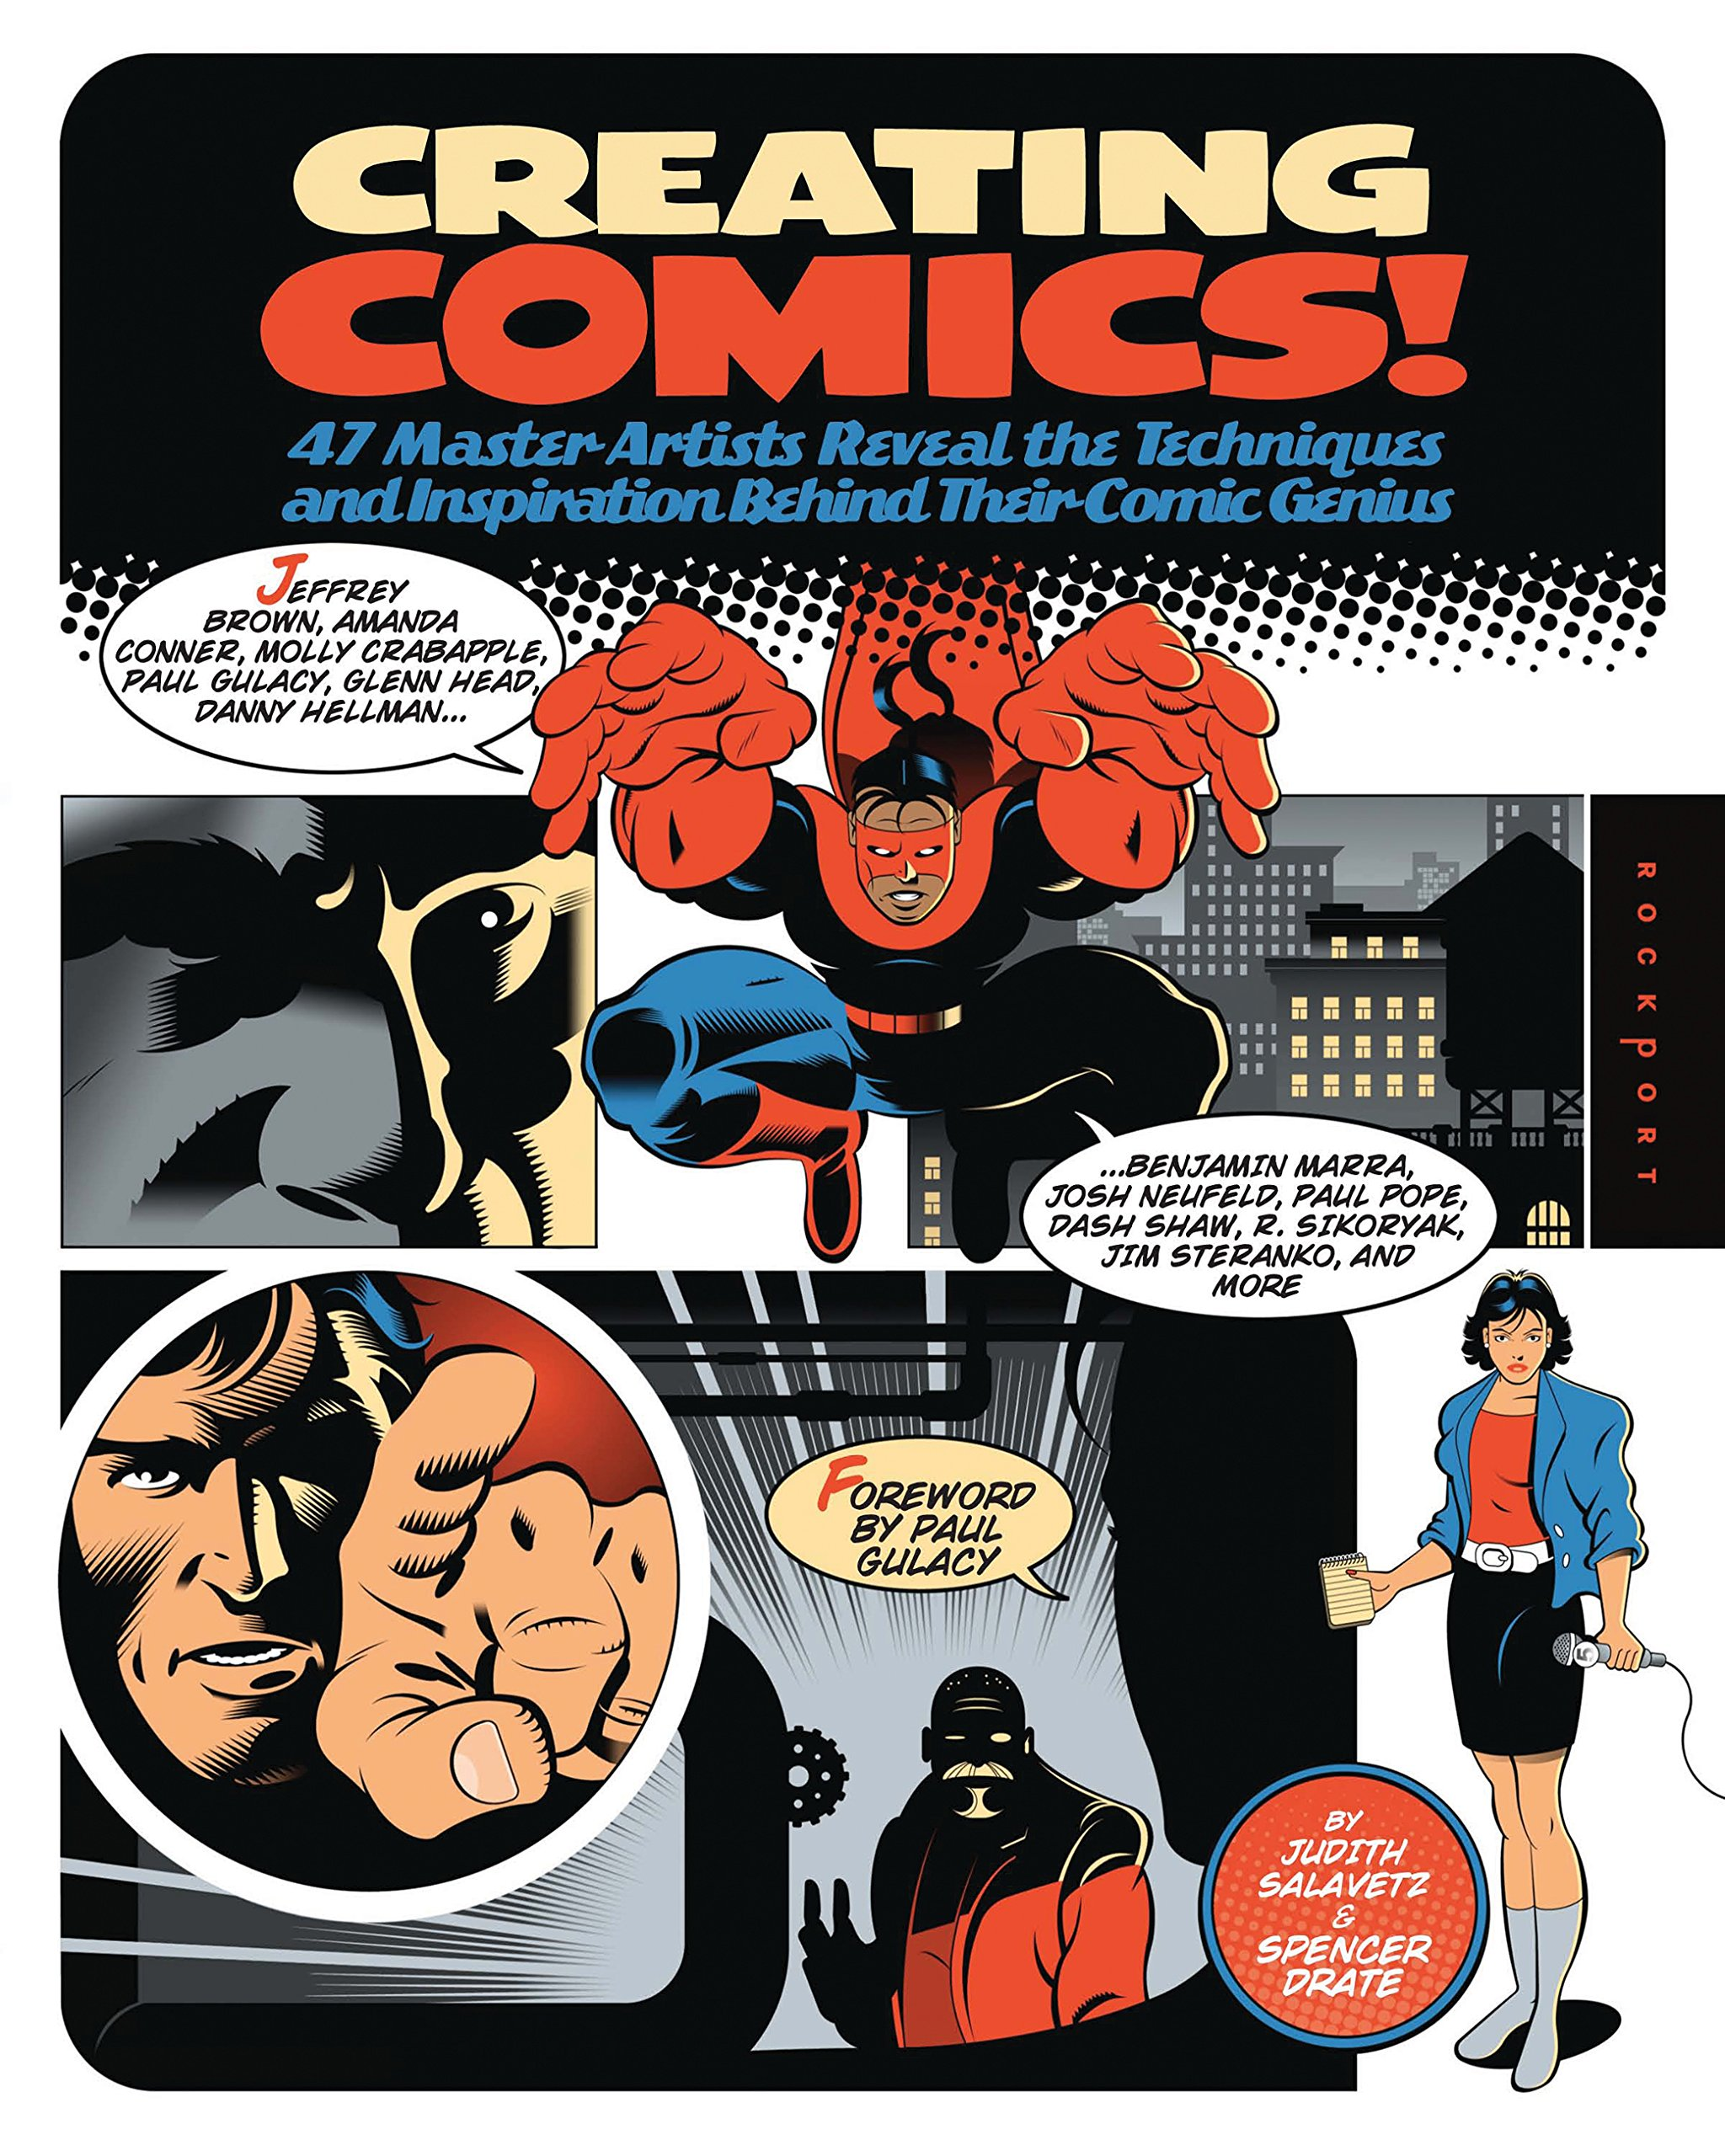 Creating Comics!: 47 Master Artists Reveal the Techniques and Inspiration Behind Their Comic Genius